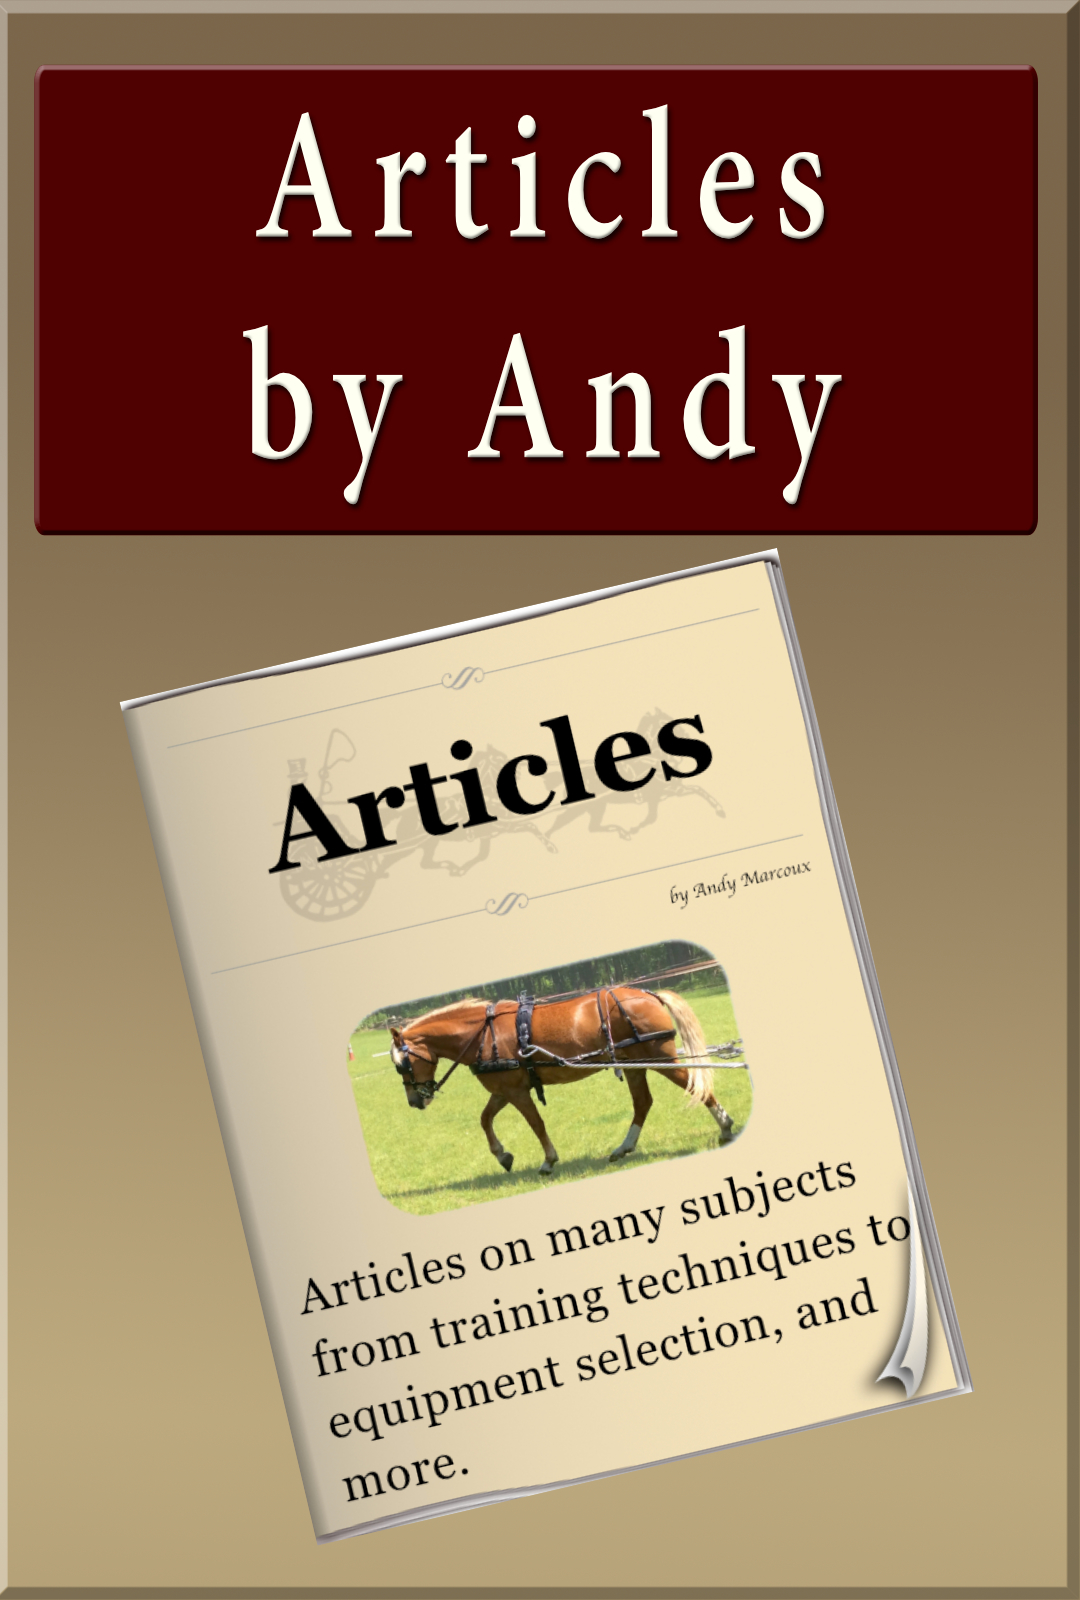 Articles Button-02